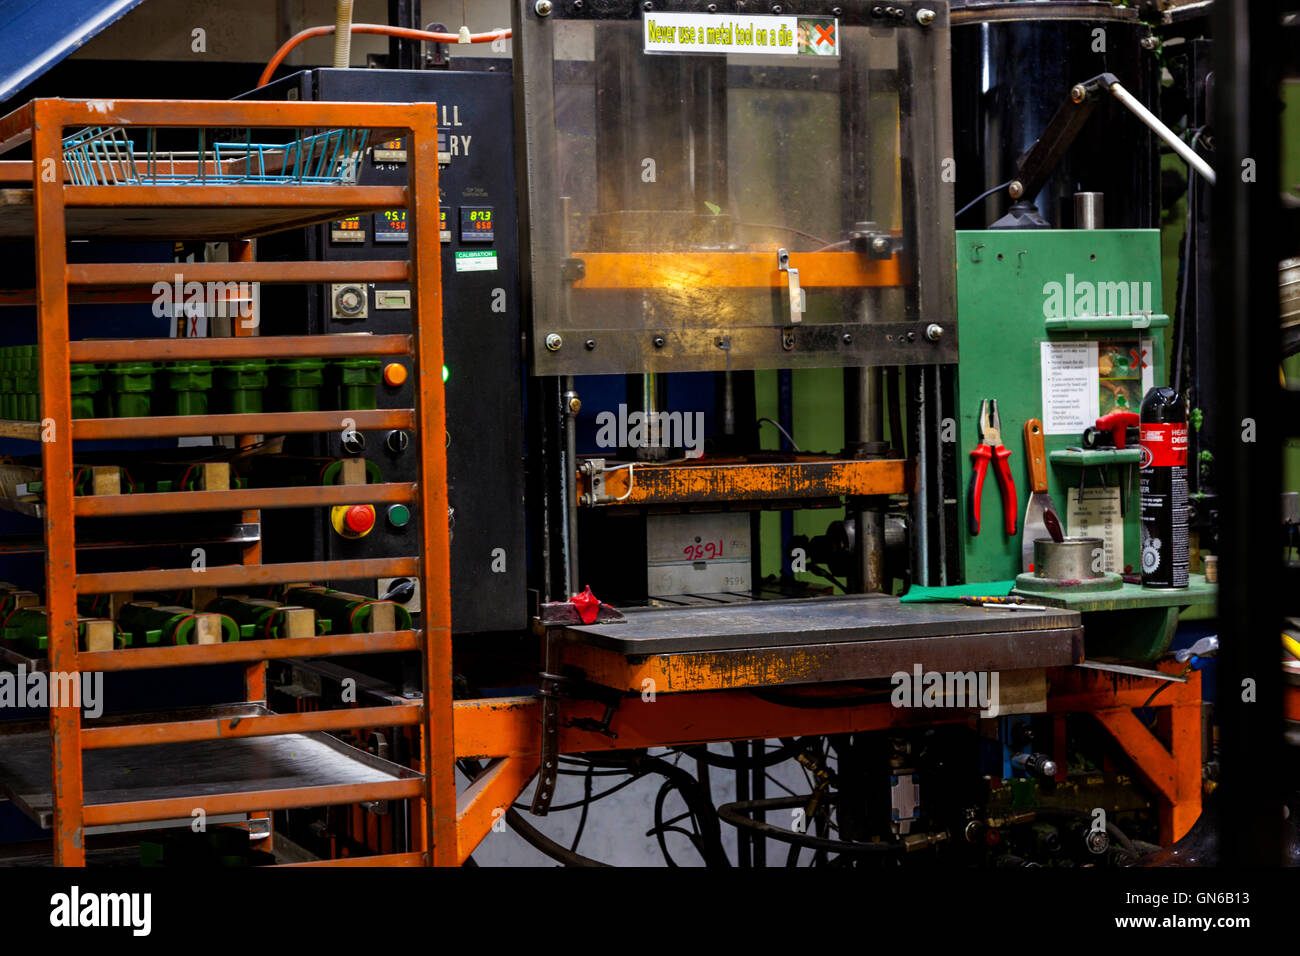 heavy industry injection molding machine - Stock Image